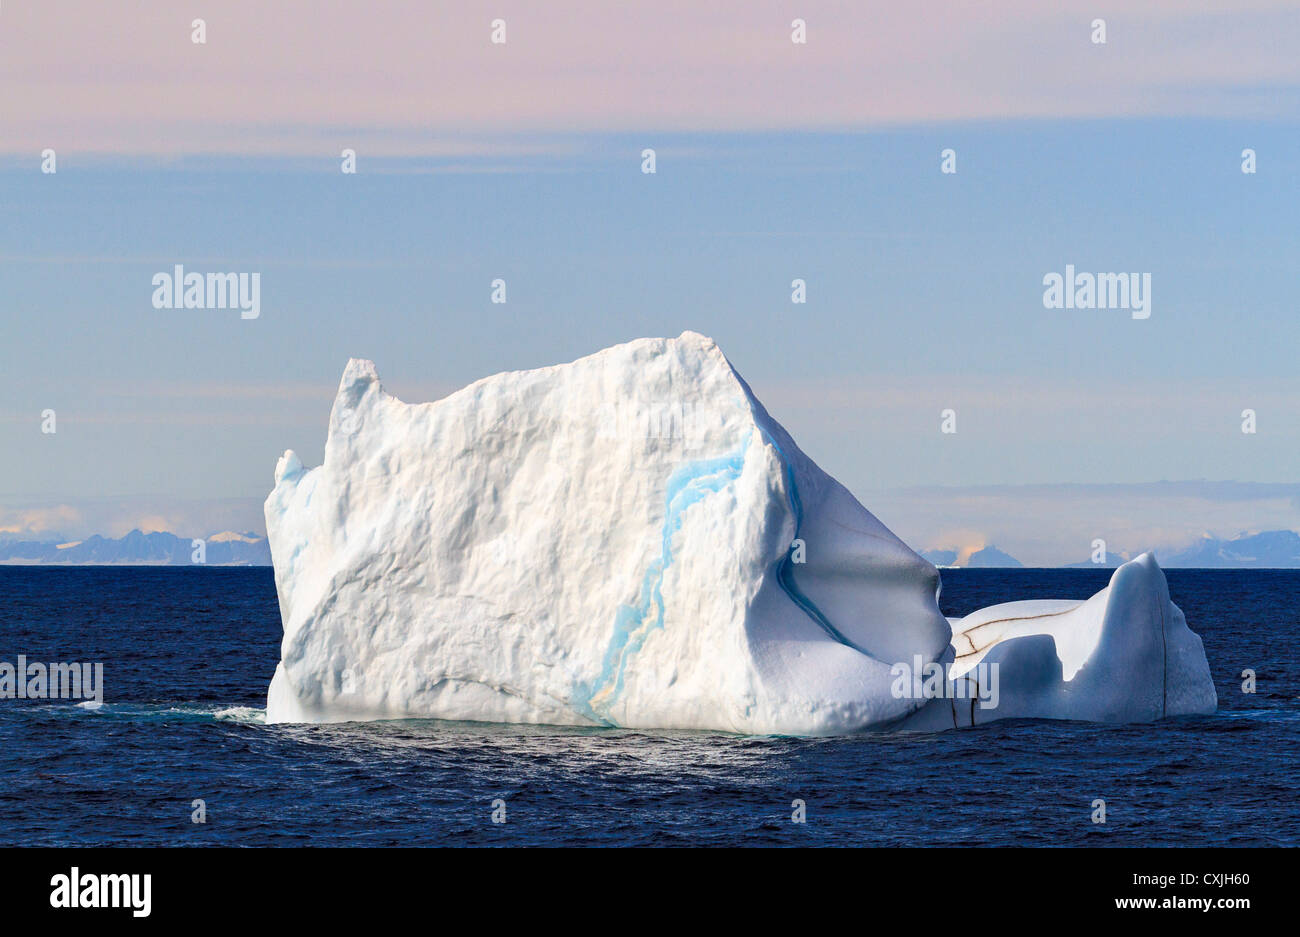 Iceberg floating in ocean water of Smith Sound in the high arctic of Nunavut, Canada, mid summer. - Stock Image